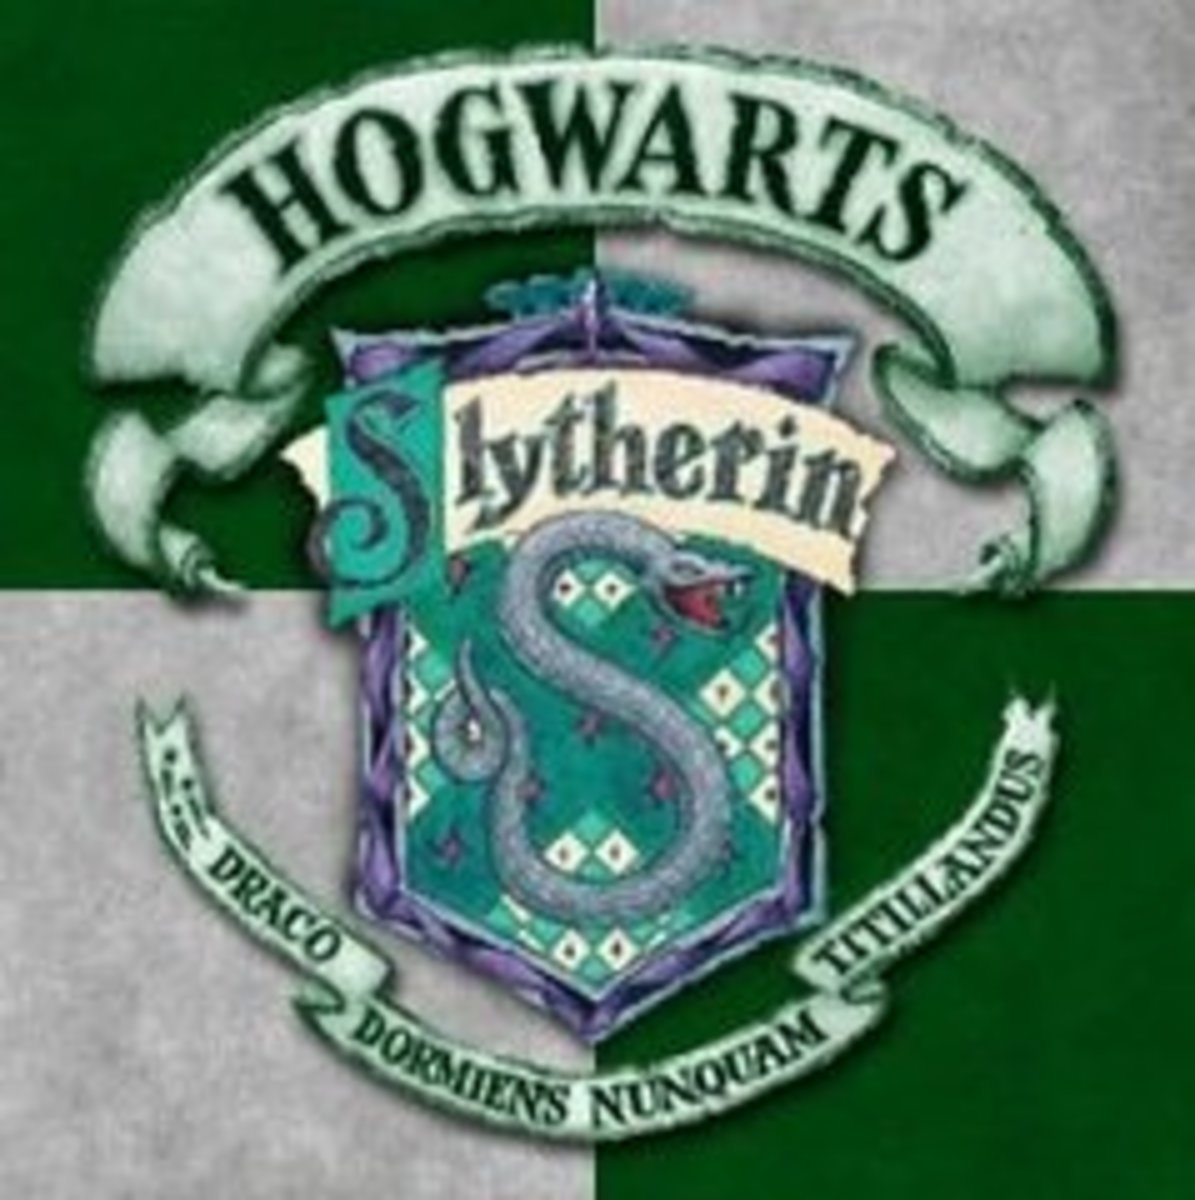 Snape never missed an opportunity to award Slytherin House points.